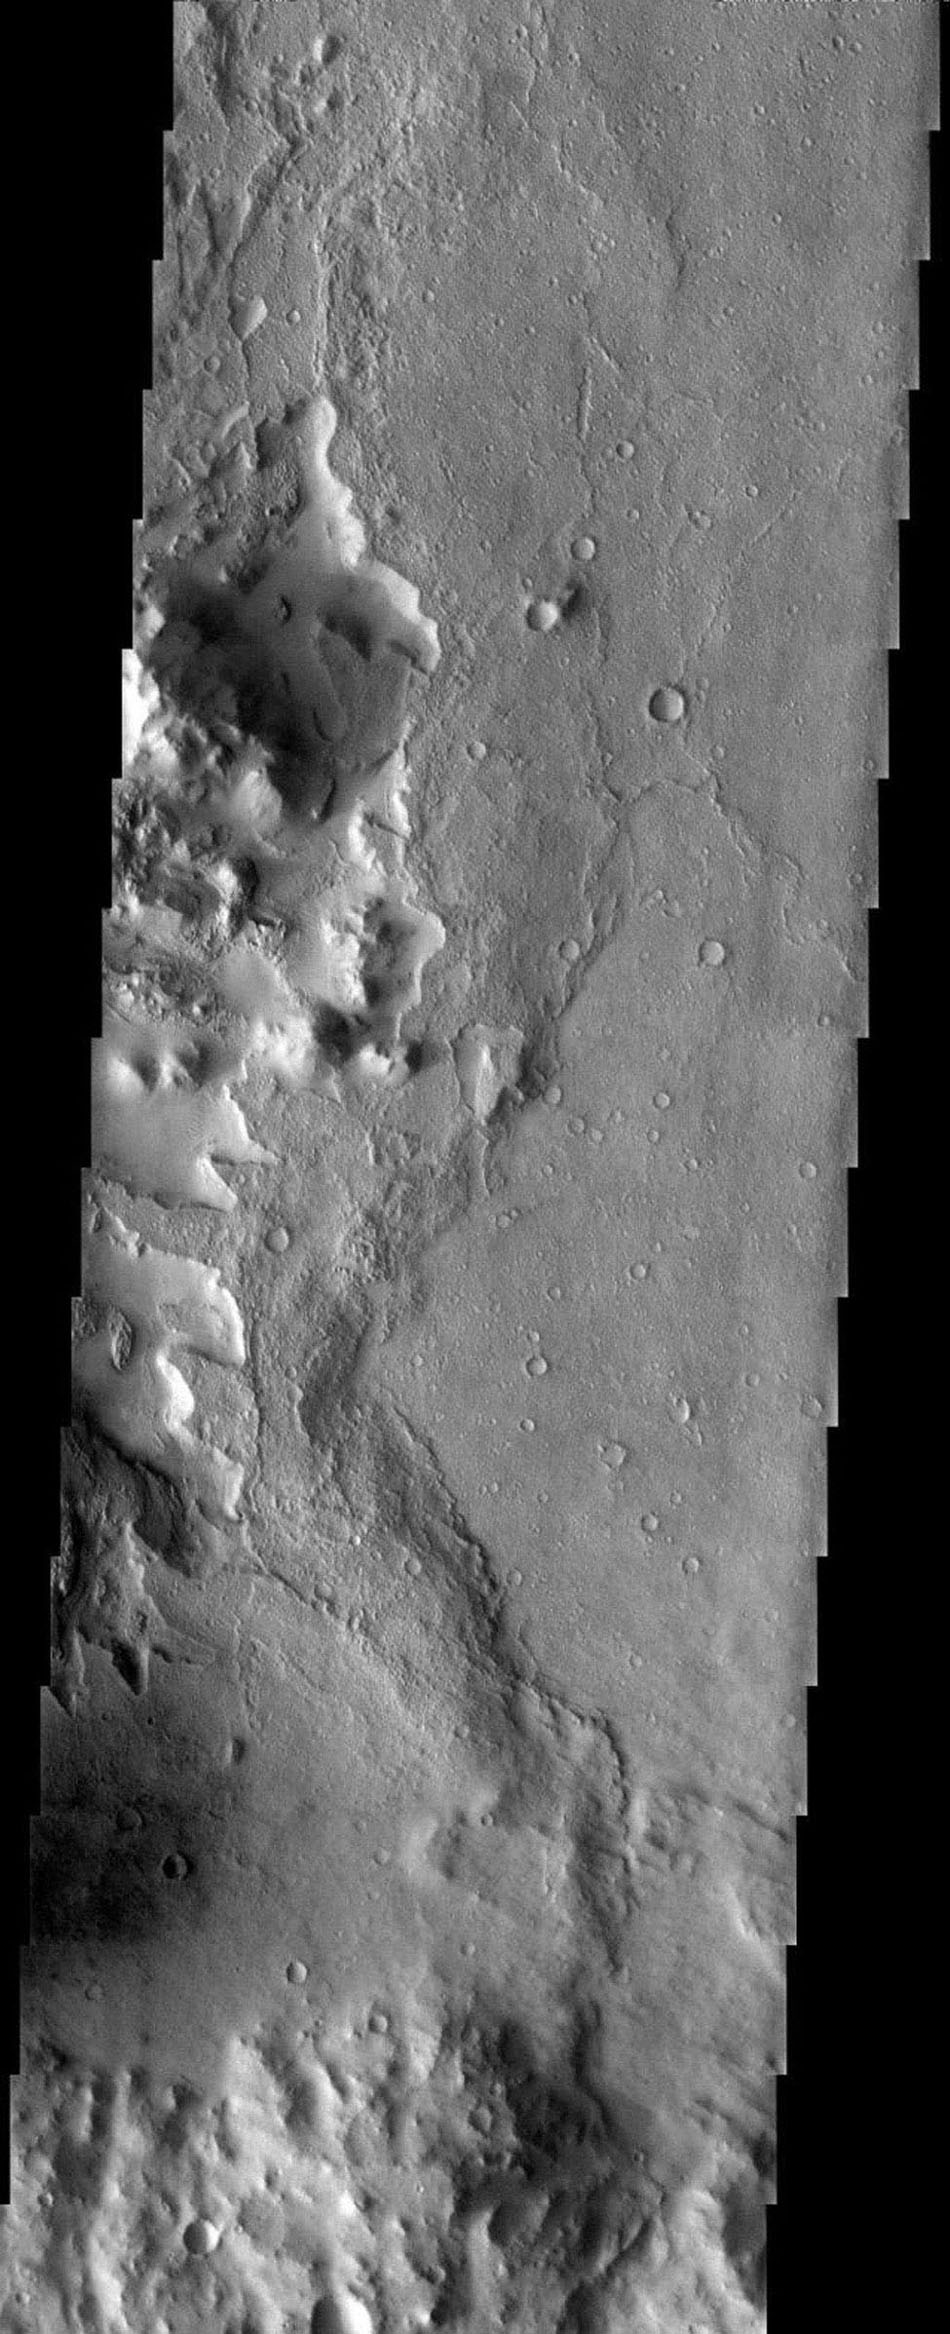 NASA's Mars Odyssey spacecraft captured this image in July 2003, showing the central uplift of an impact crater on Mars that formed by inward and upward movement of material below the crater floor during the crater-forming event.